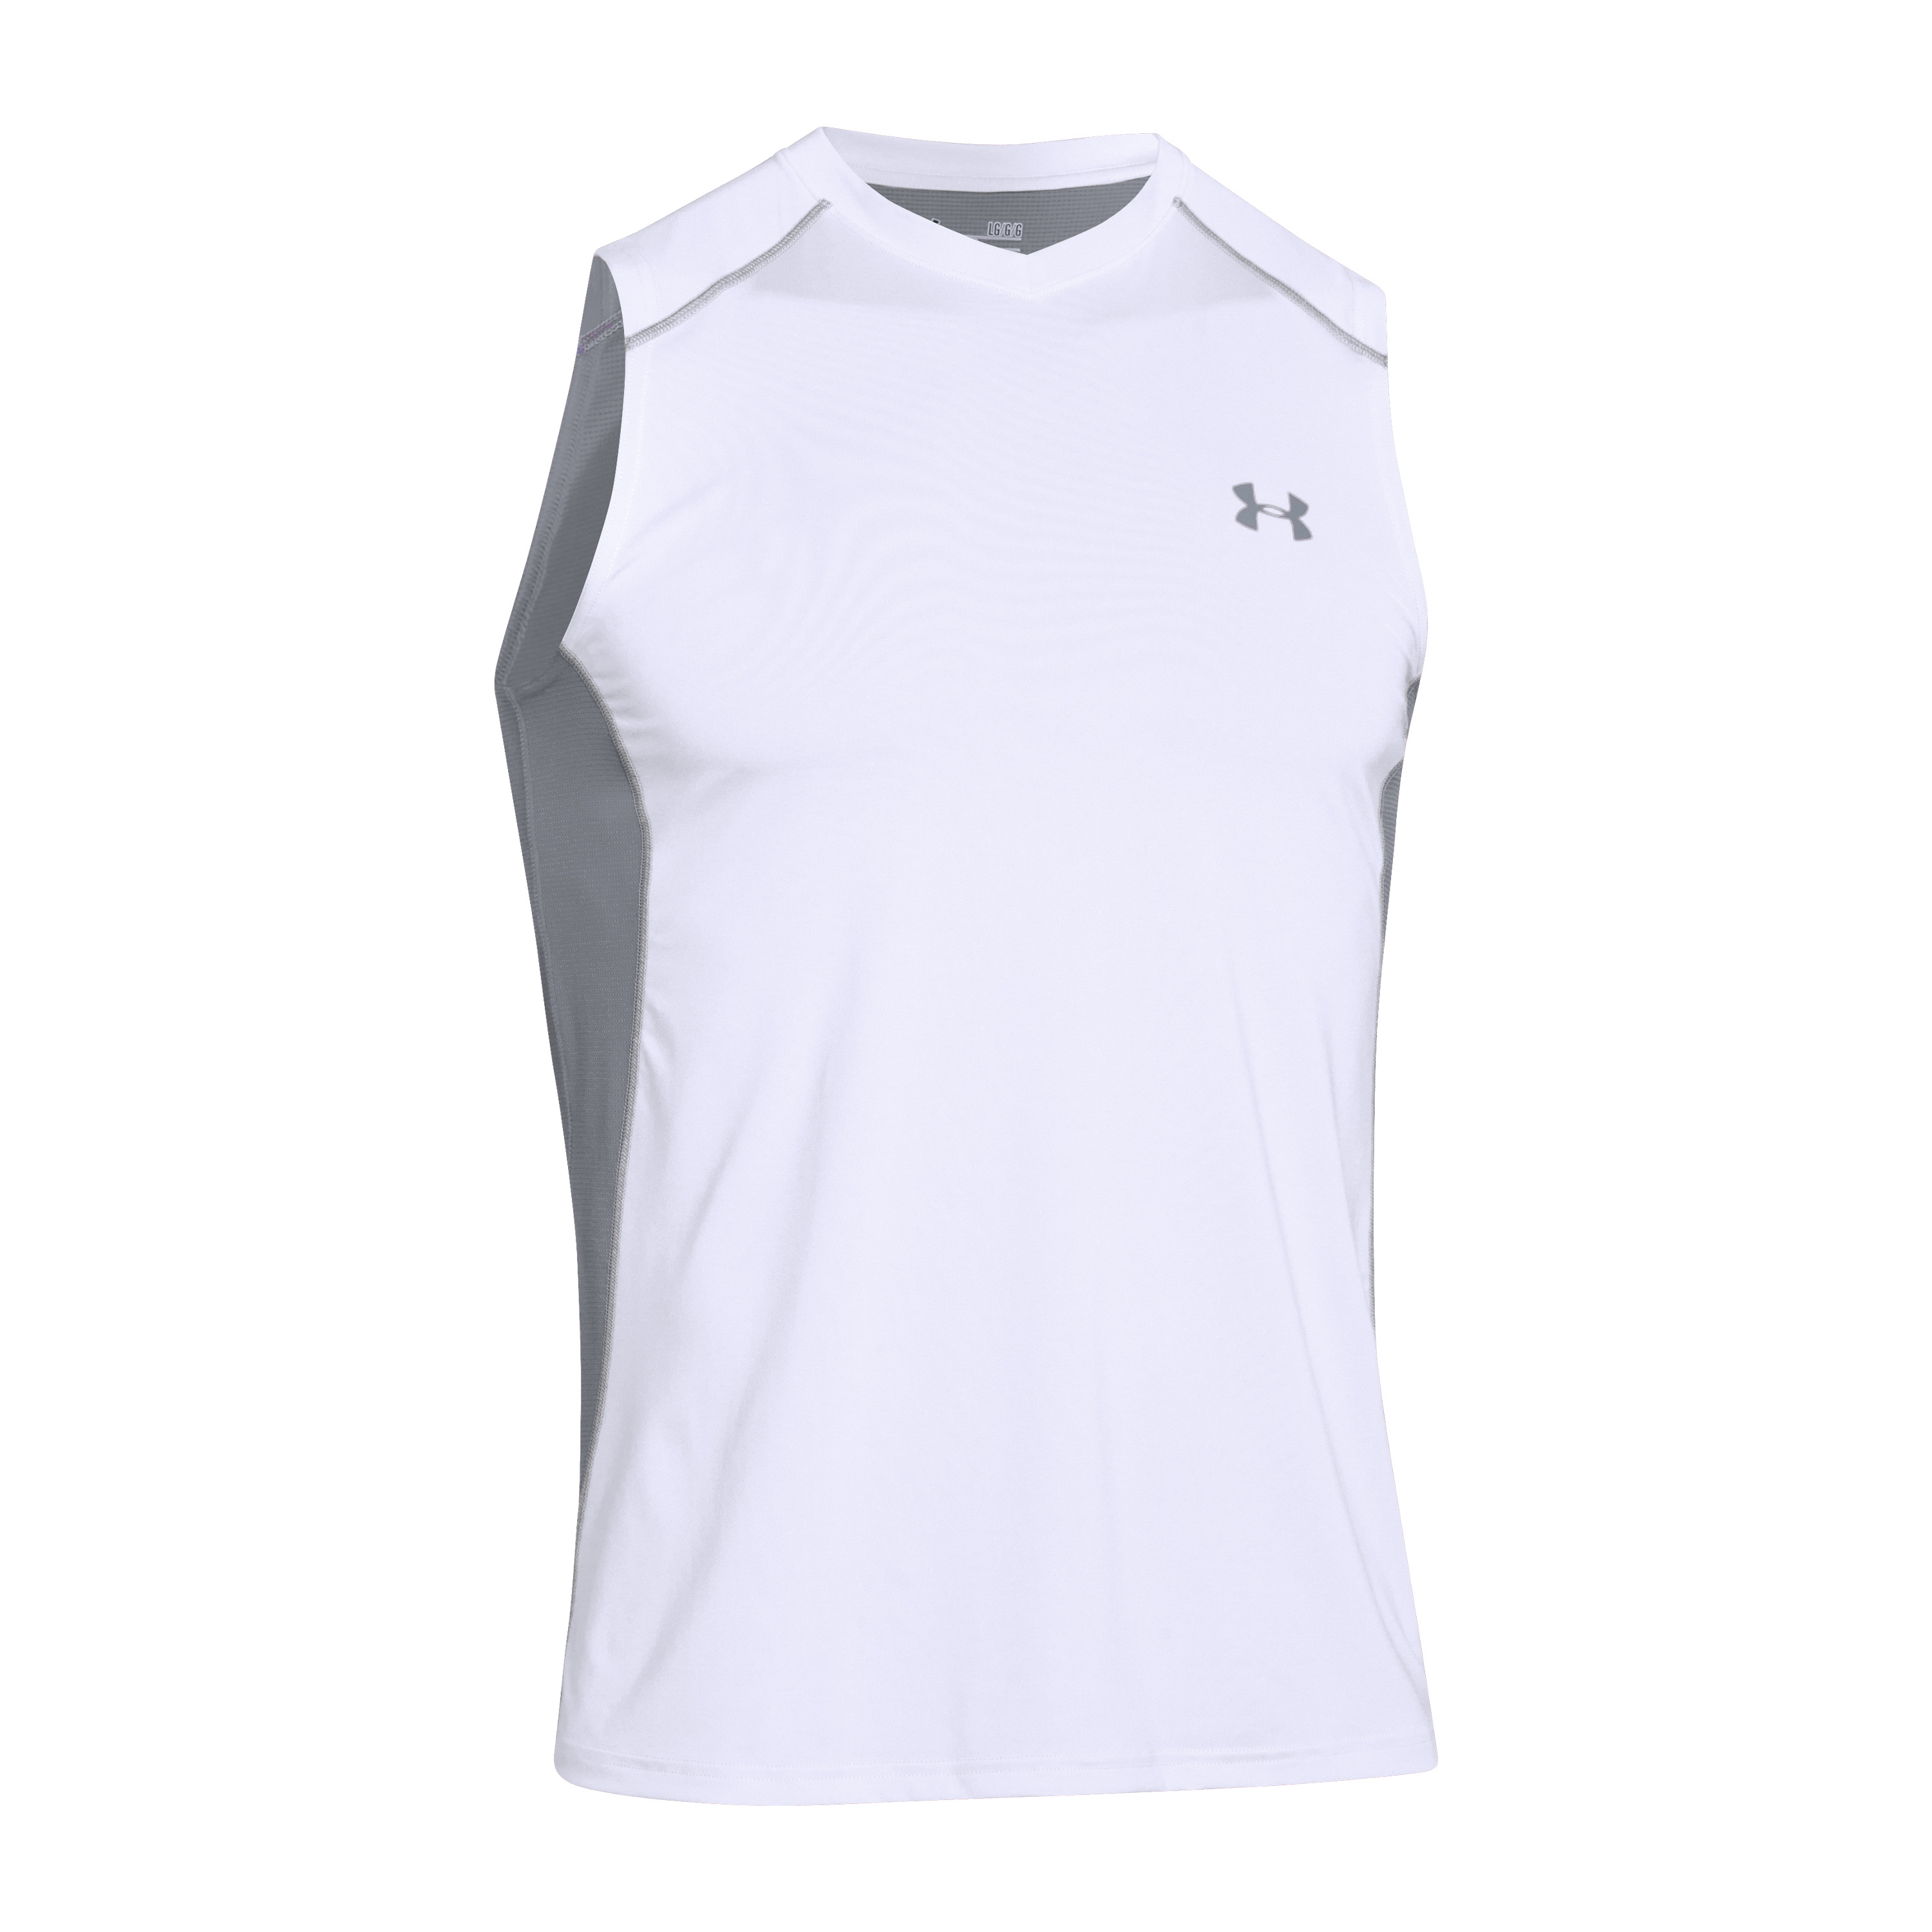 Under Armour Shirt Raid white/gray